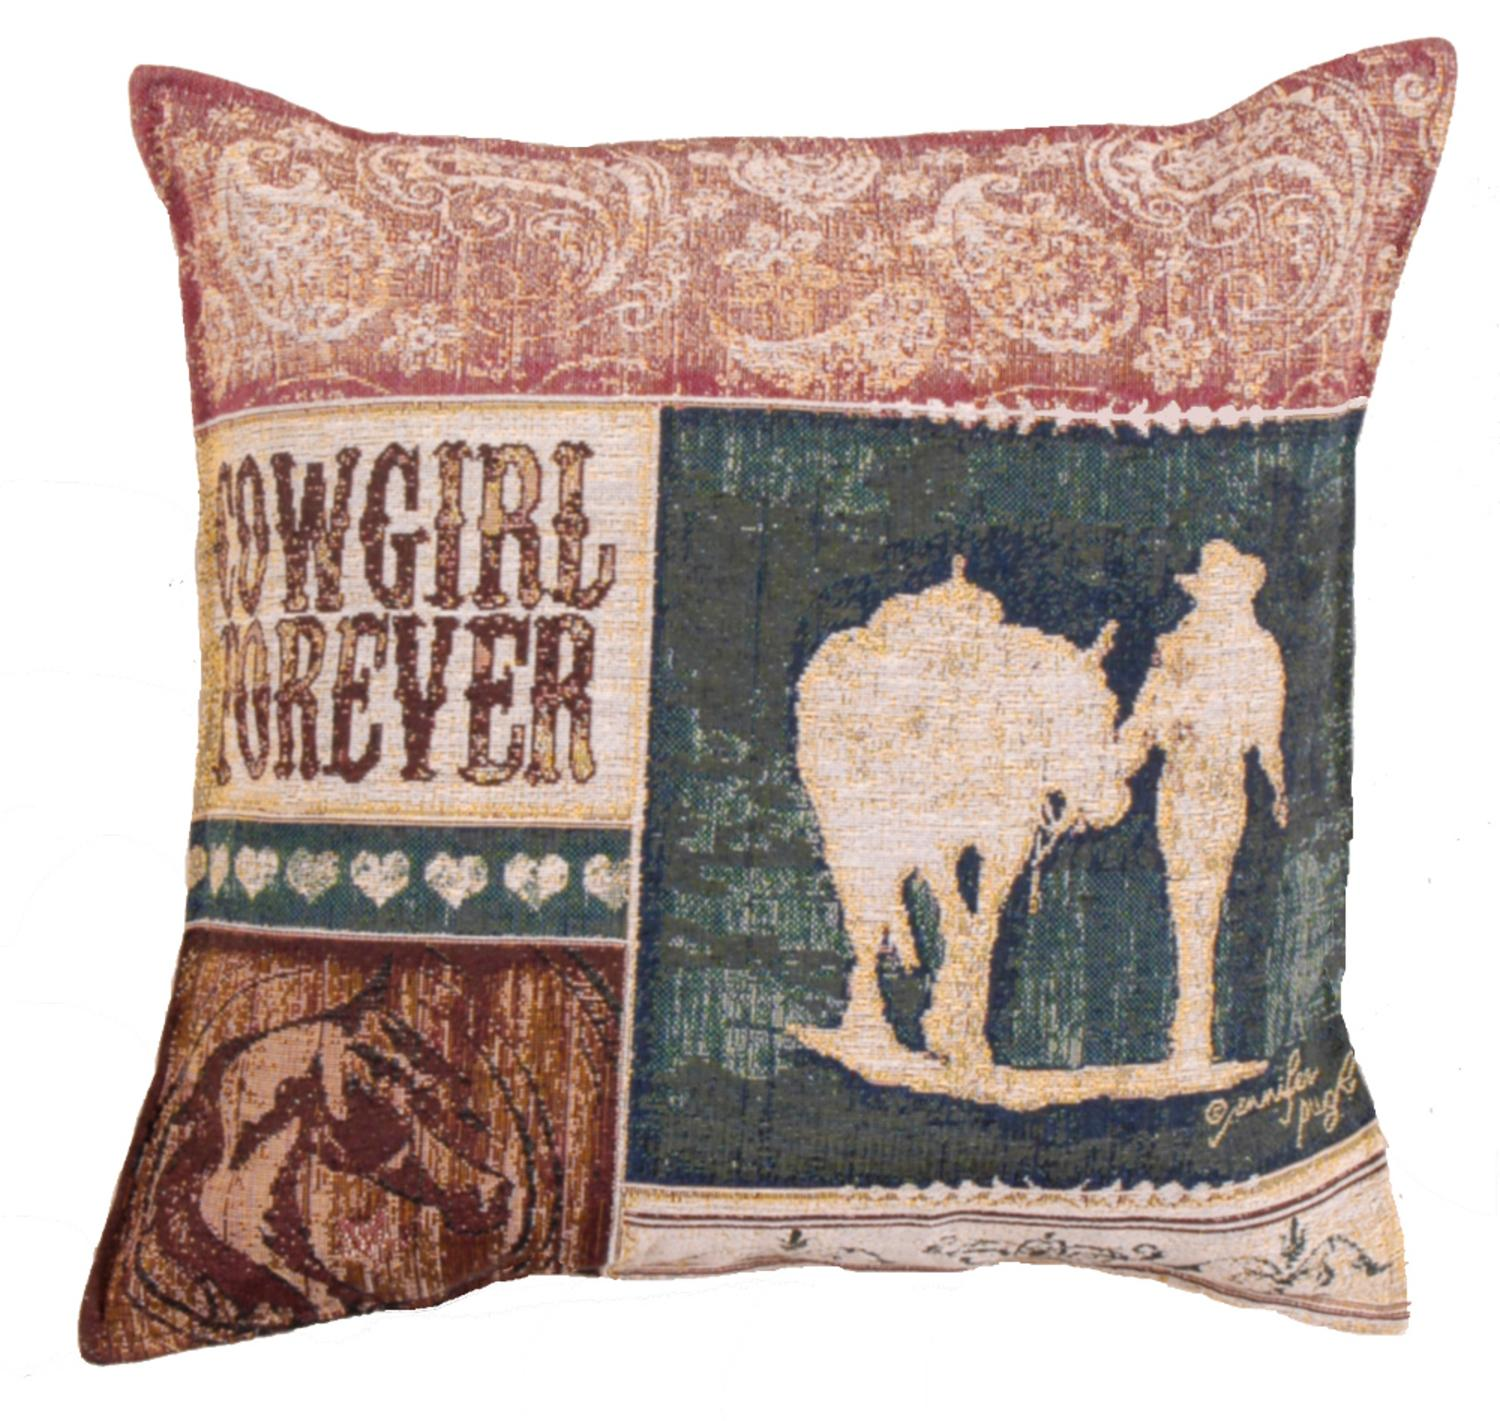 Set of 2 Country Western Cowgirl Forever Decorative Tapestry Throw Pillows 17""